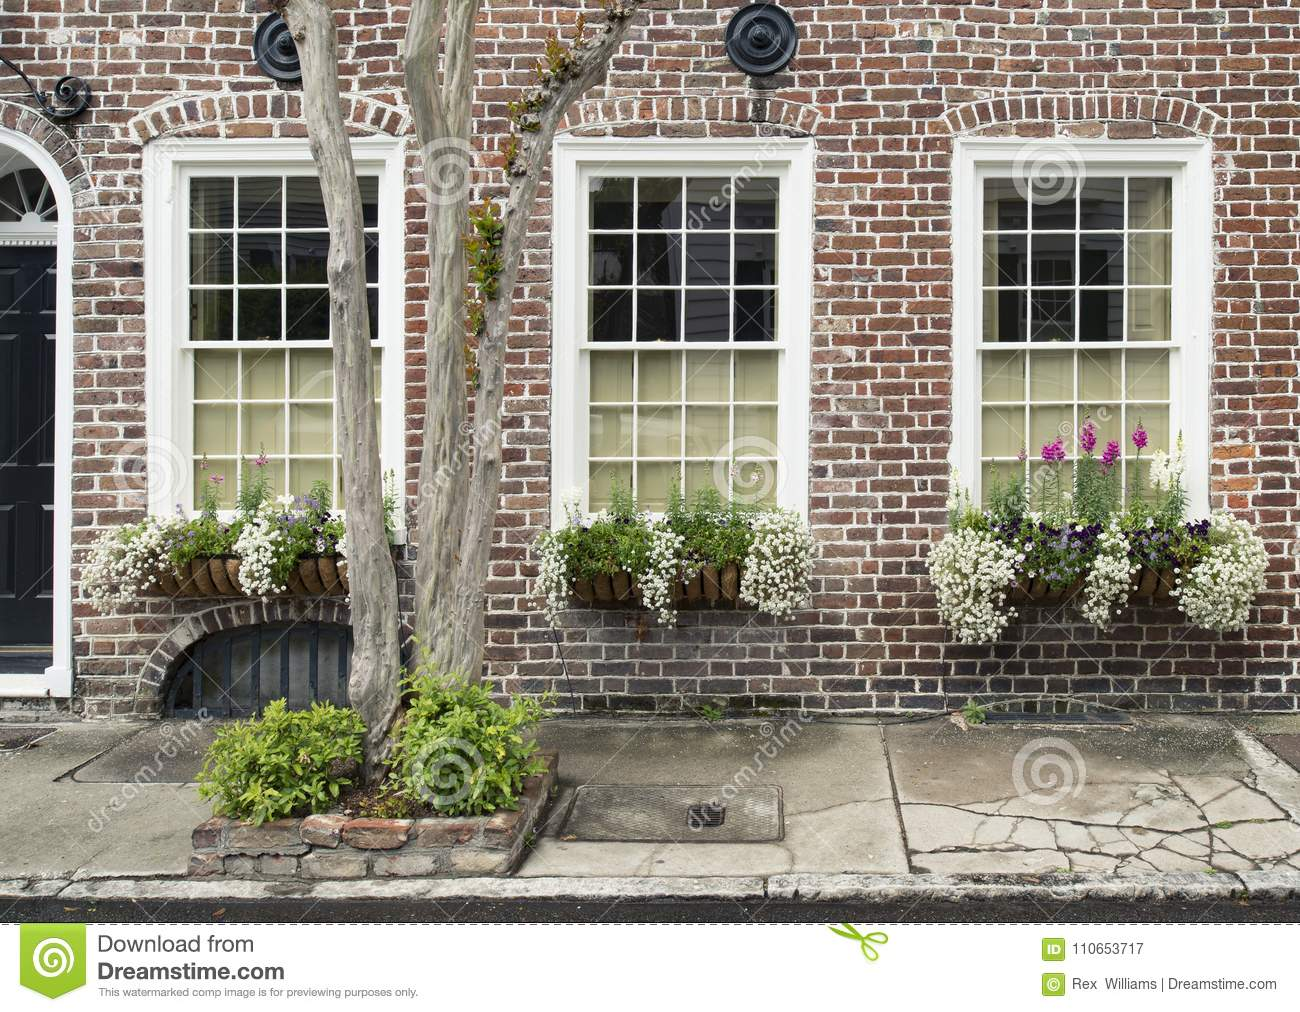 windows and window boxes planters displays adornments enhance architecture